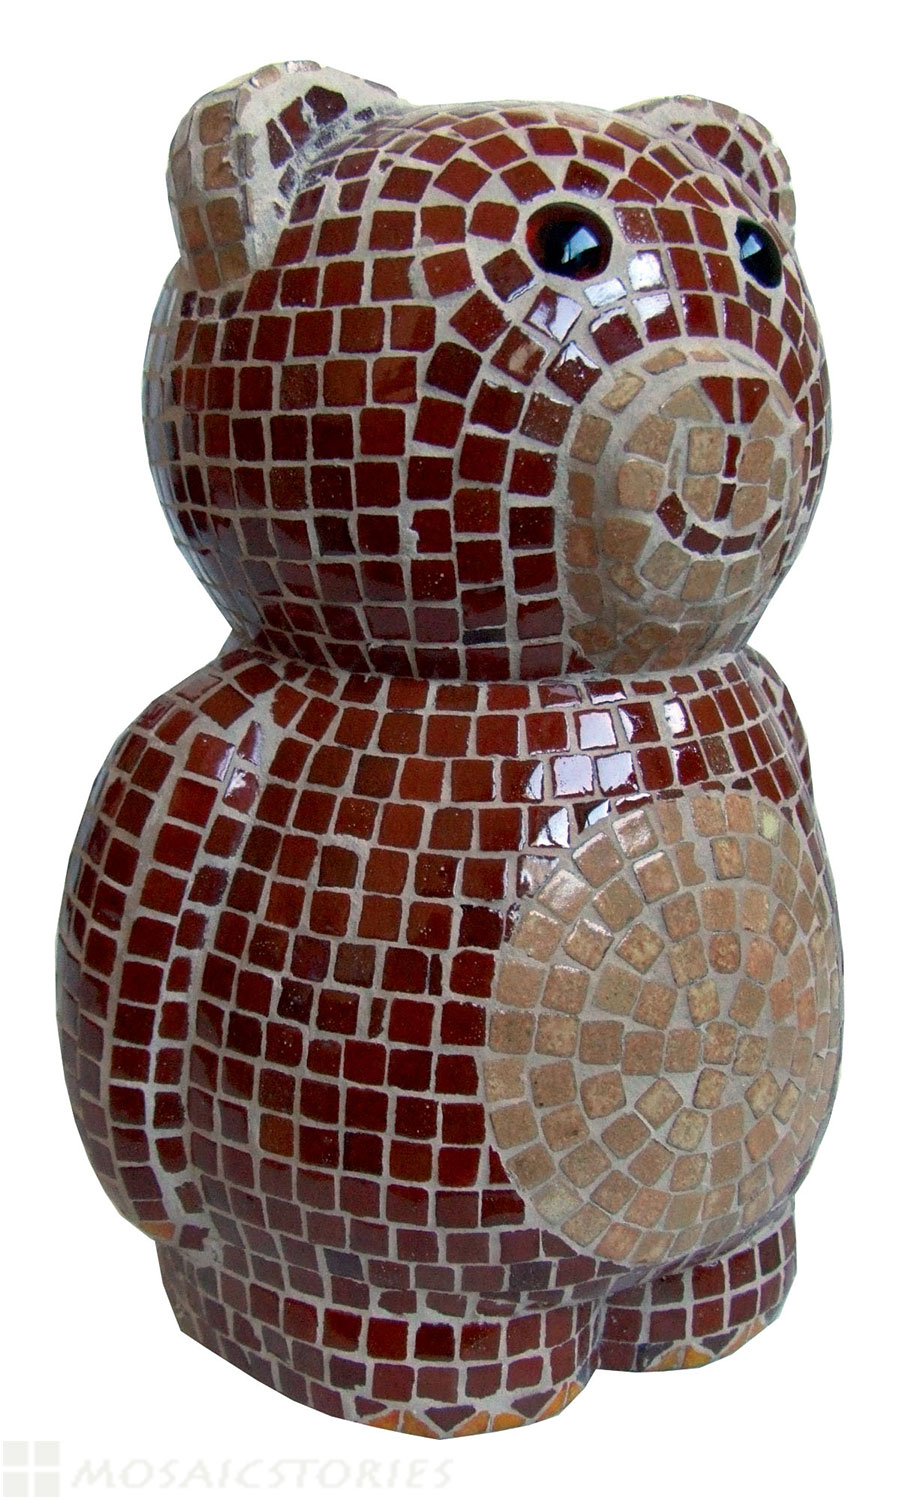 Bear Alea Mosaik with micro Ceramic tiles